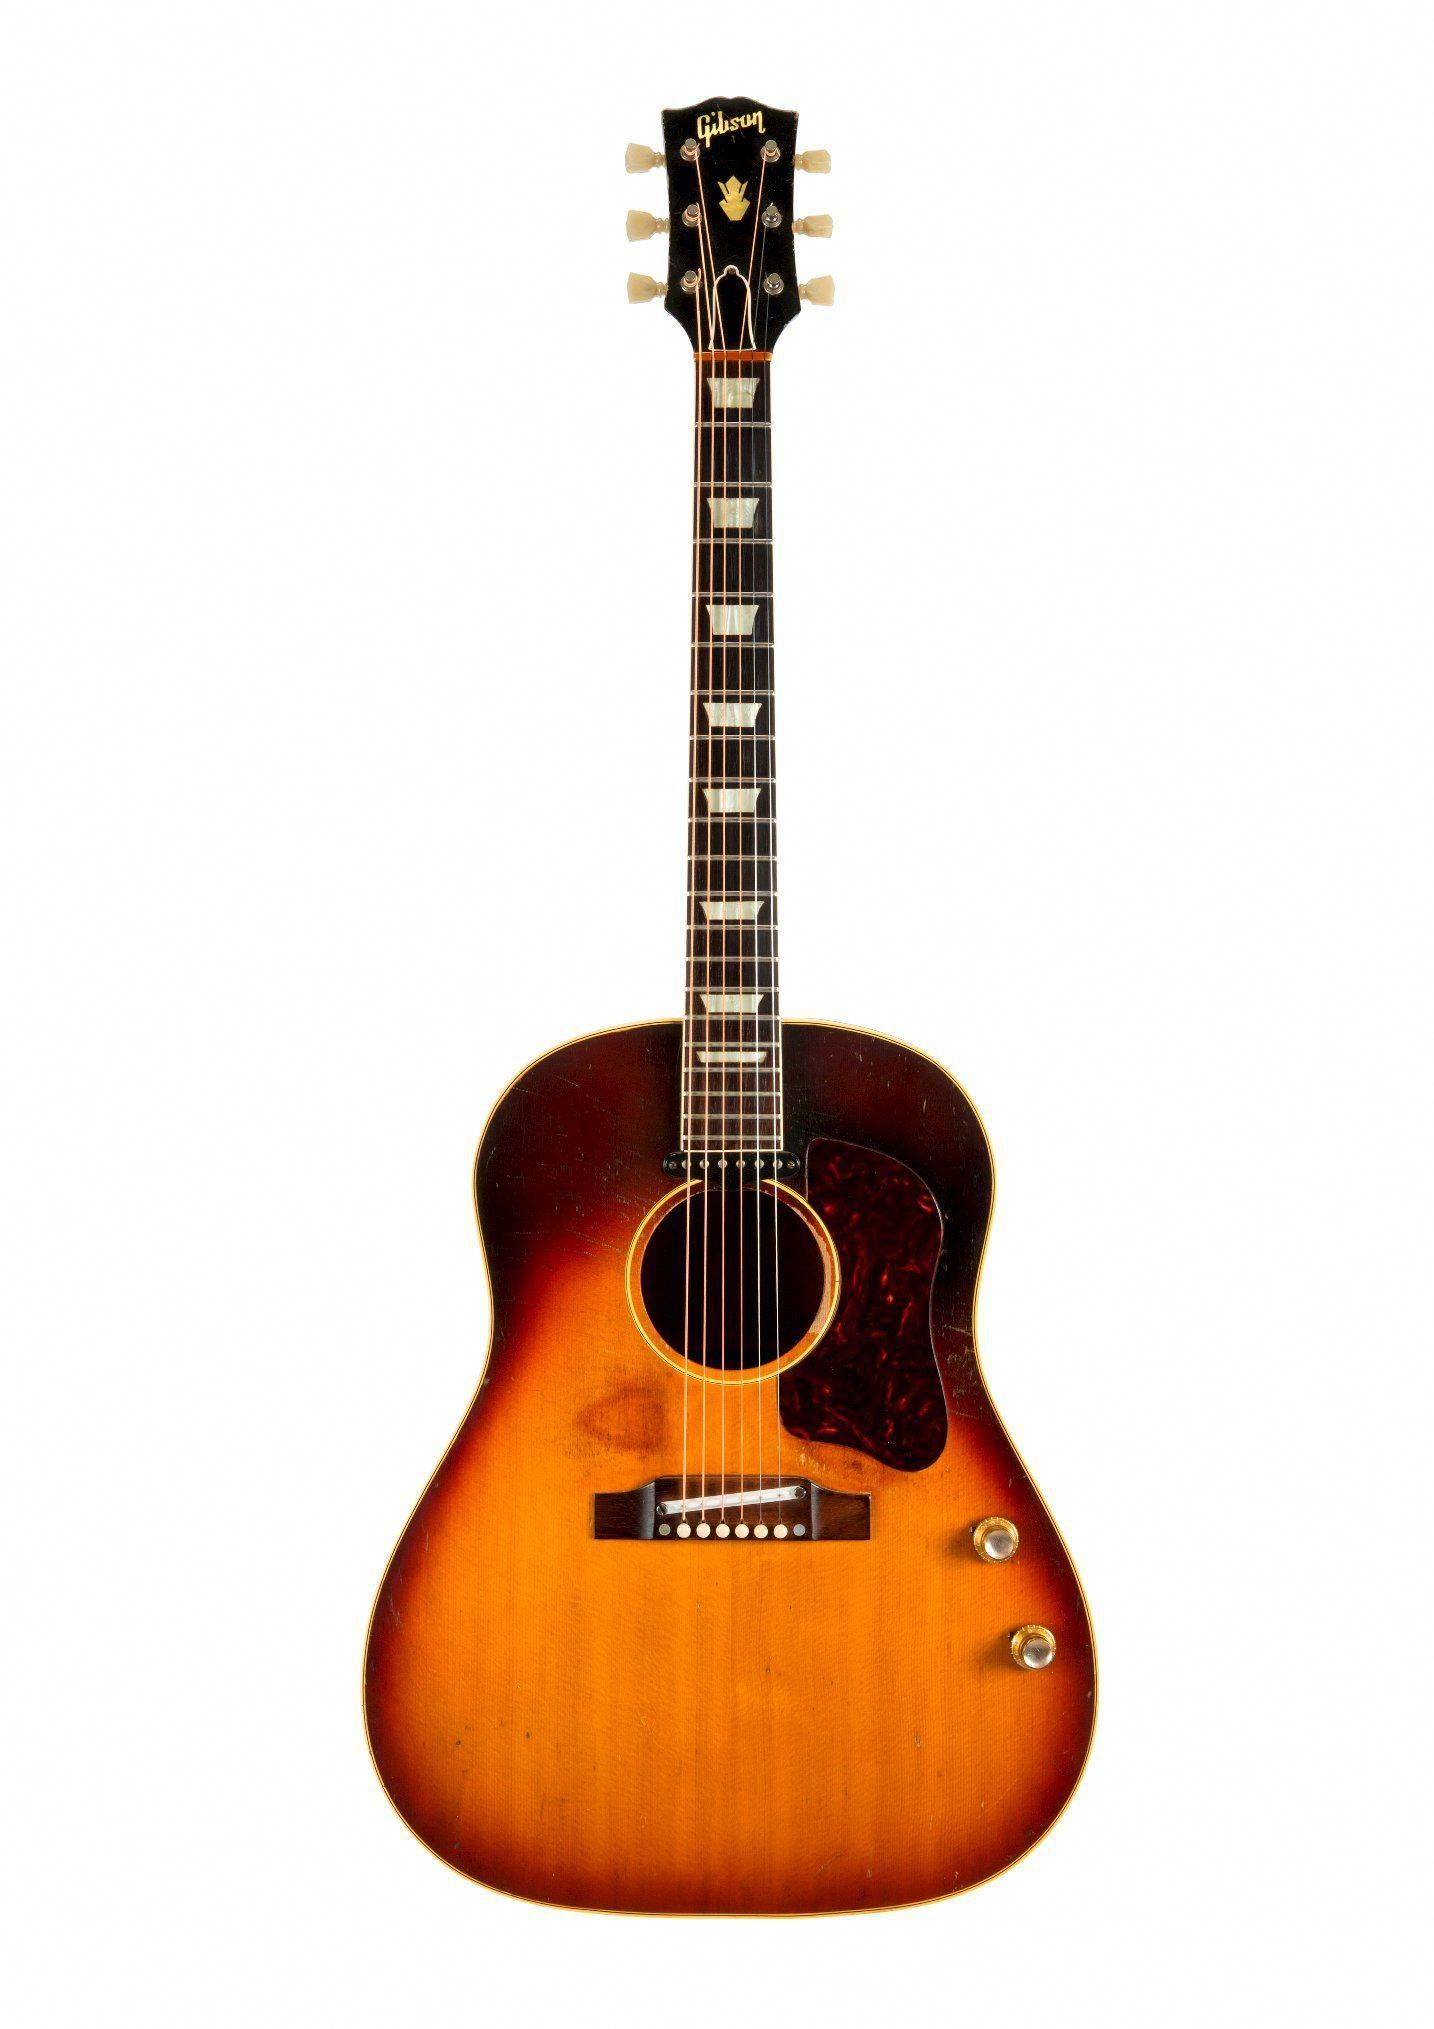 Become The Best Guitar Player Out There John Lennon Guitarras Acusticas Violao Usado